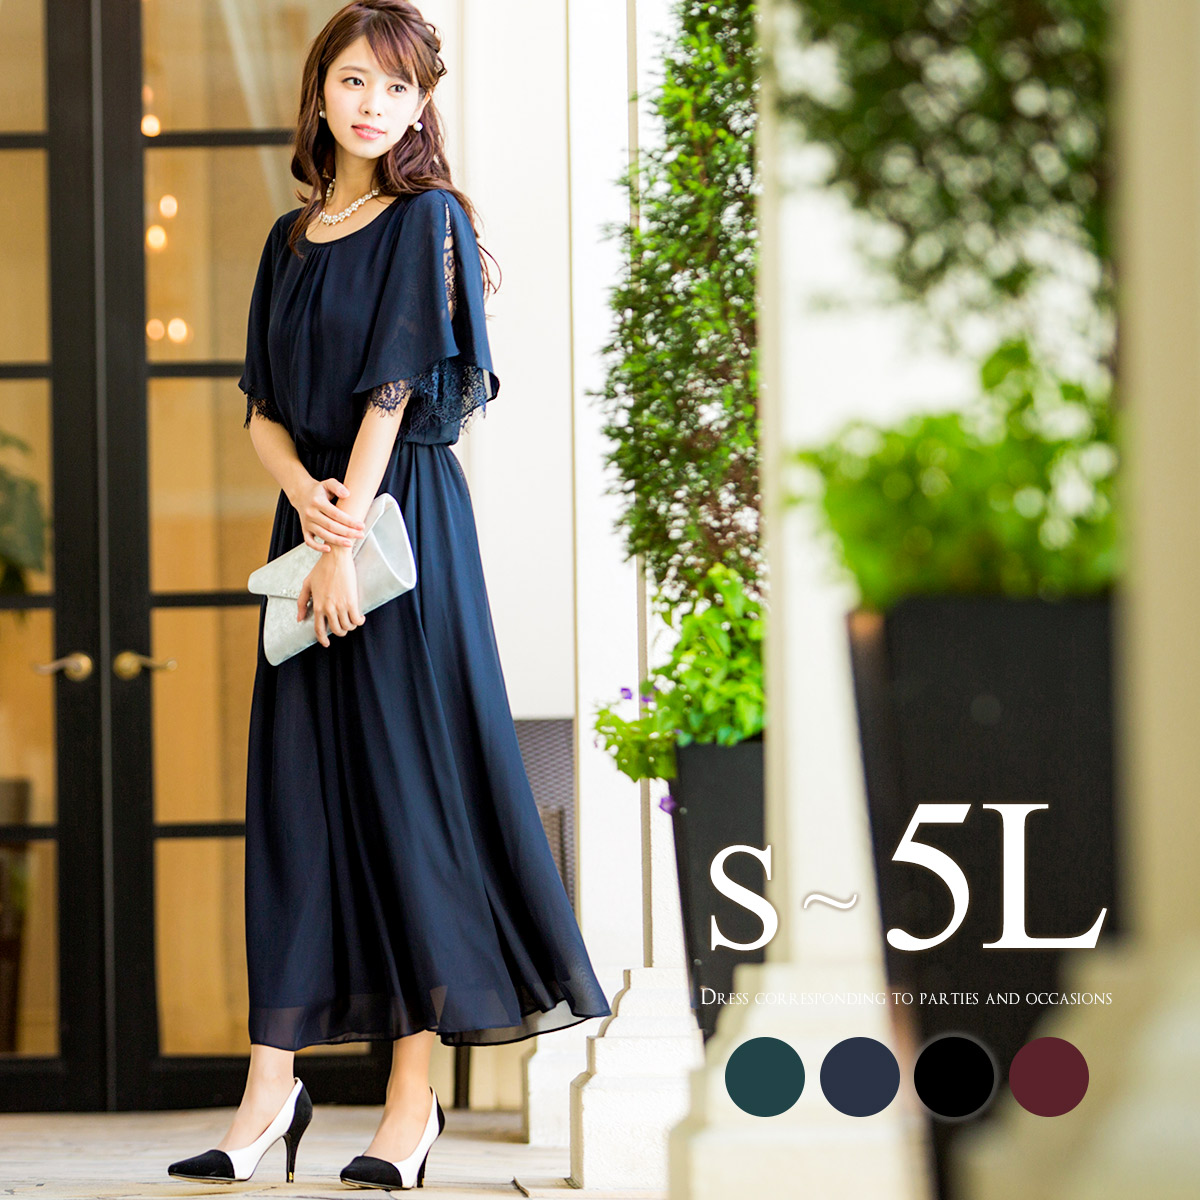 de873c89fa0 FashionLetter  The black navy dark blue dress invite that there is wedding  ceremony dress party dress race big size maternity figure cover long length  party ...